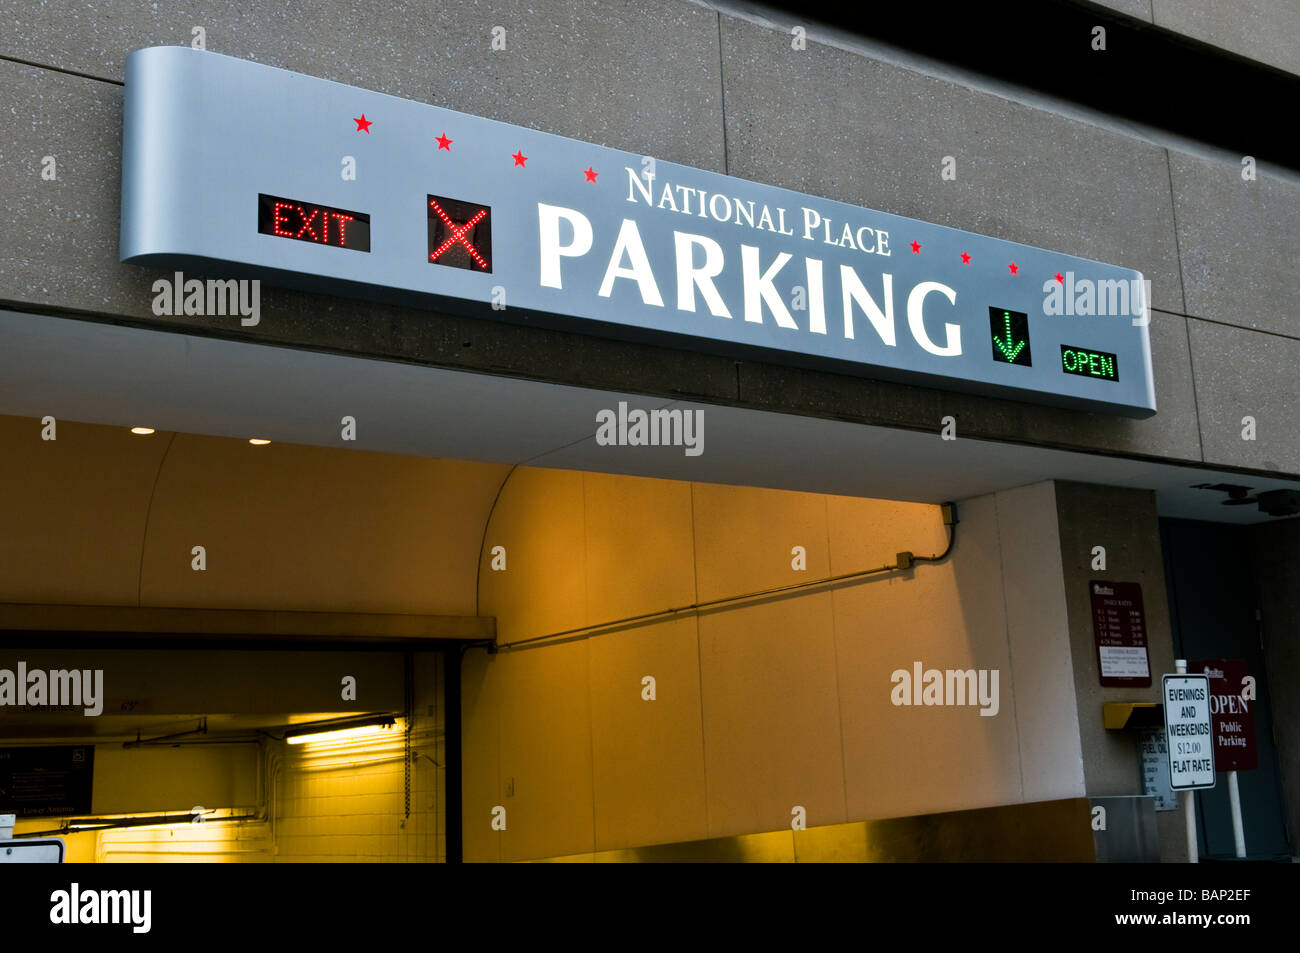 Location Parking Paris 16 Parking Garage Stock Photos Parking Garage Stock Images Alamy